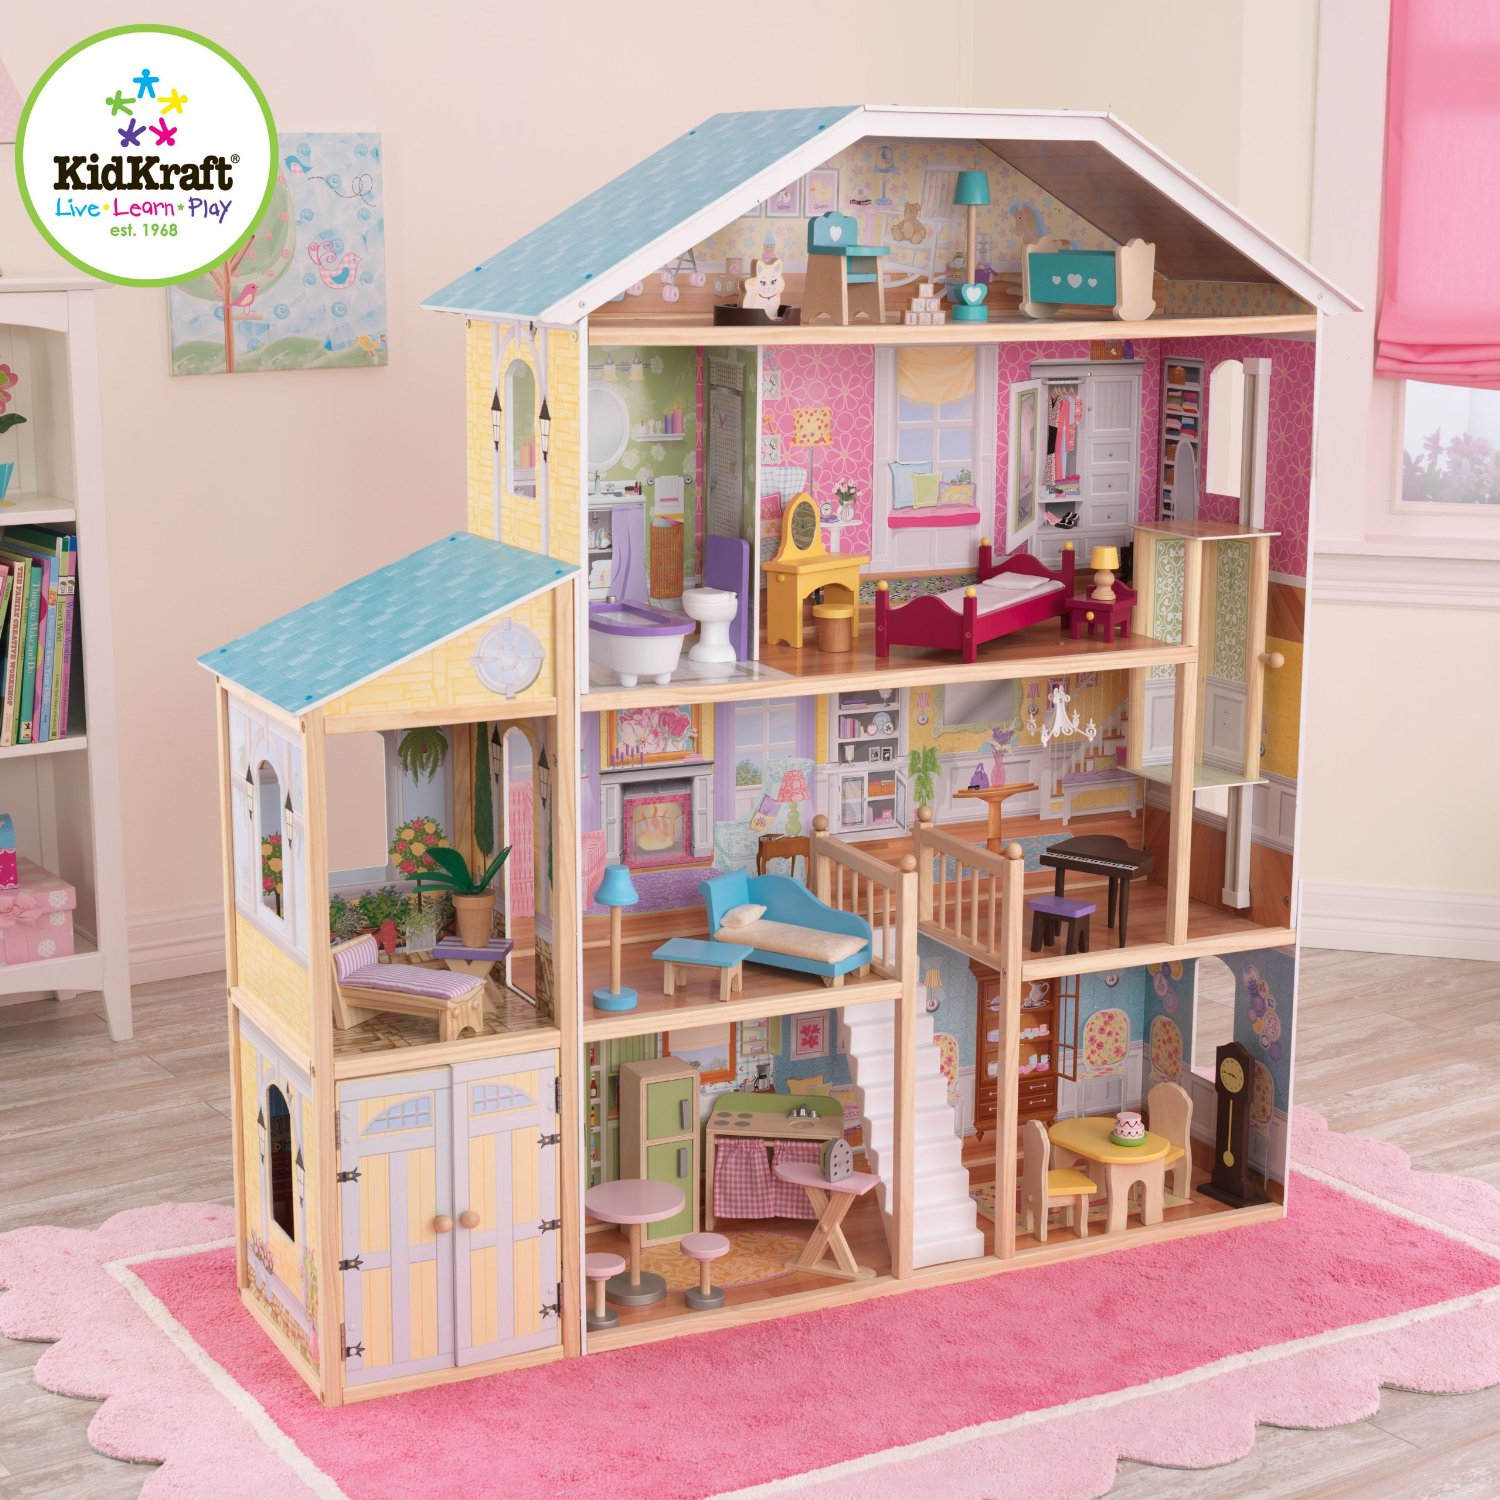 Lovely Kidkraft Majestic Mansion Dollhouse 65252 For Kids Play Room Furniture Ideas: Charming Kidkraft Majestic Mansion Dollhouse 65252 Made Of Wood On Pink Rug Matched With Beige Wall For Kids Room Decor Ideas